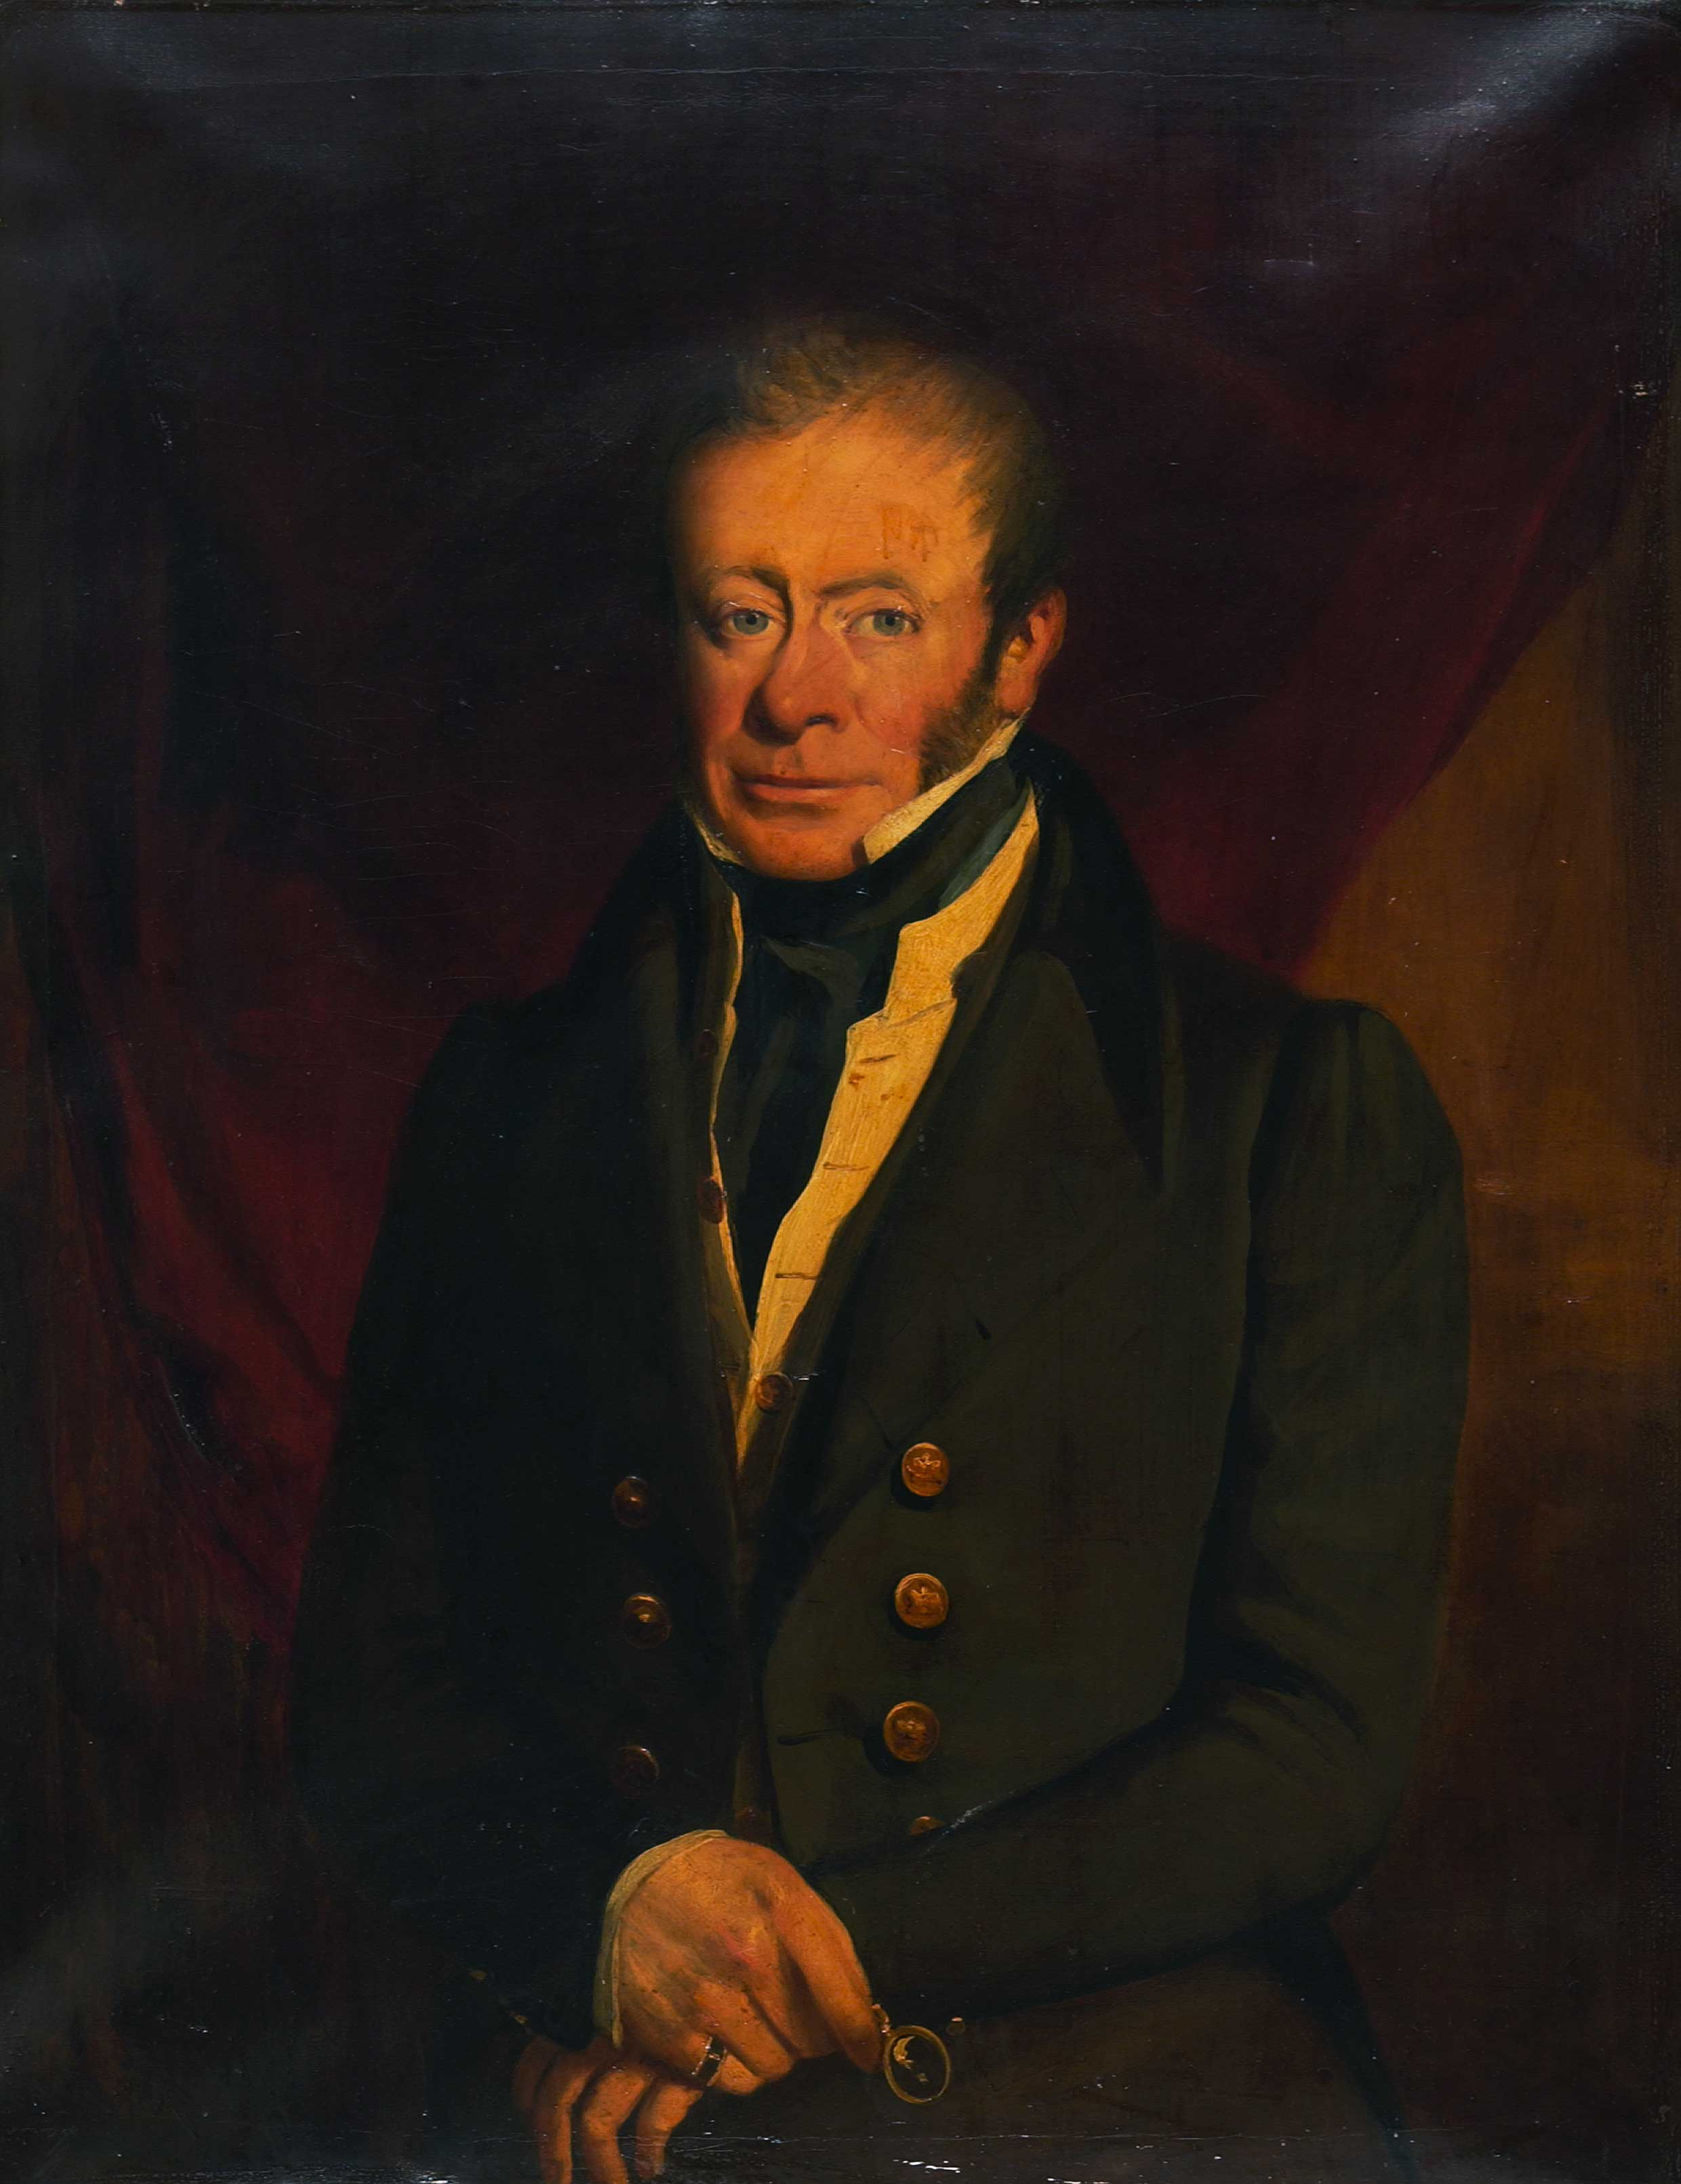 Dr. W Bolling MP for Bolton